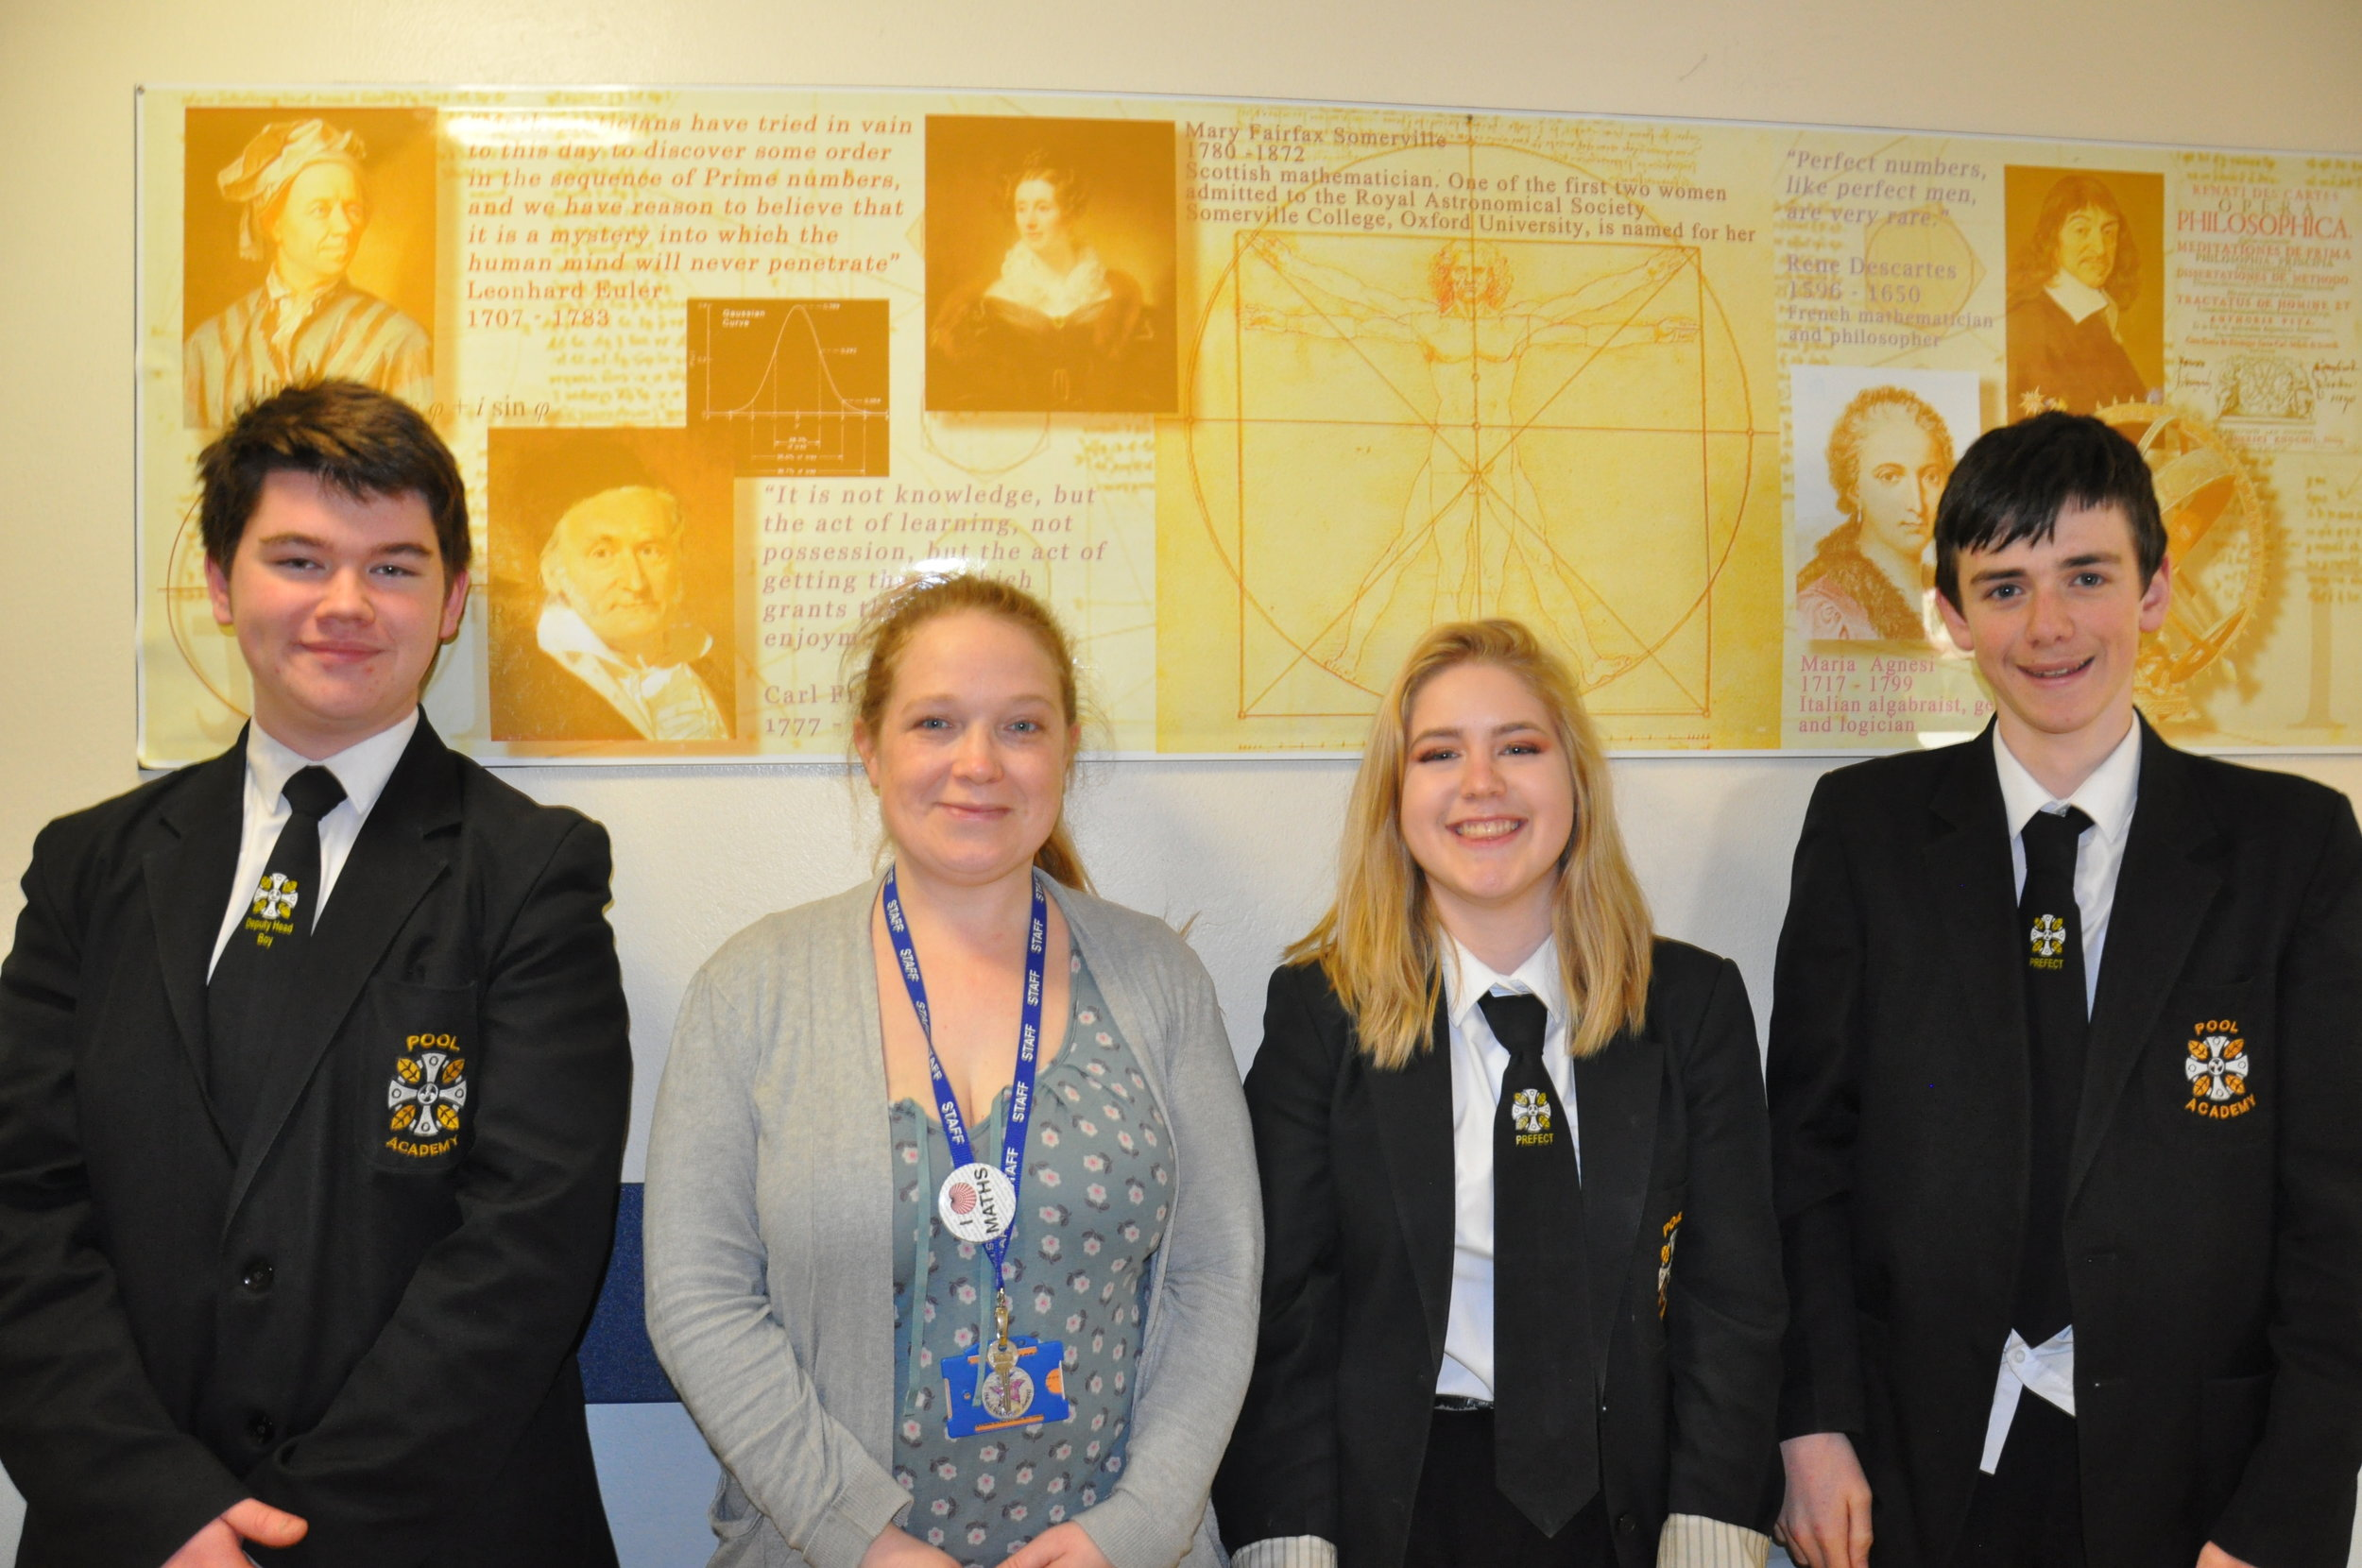 Alfie Baker, Maths teacher Mara Weir, Paige Denning and Matt. All excited about being accepted into Exeter Maths School.